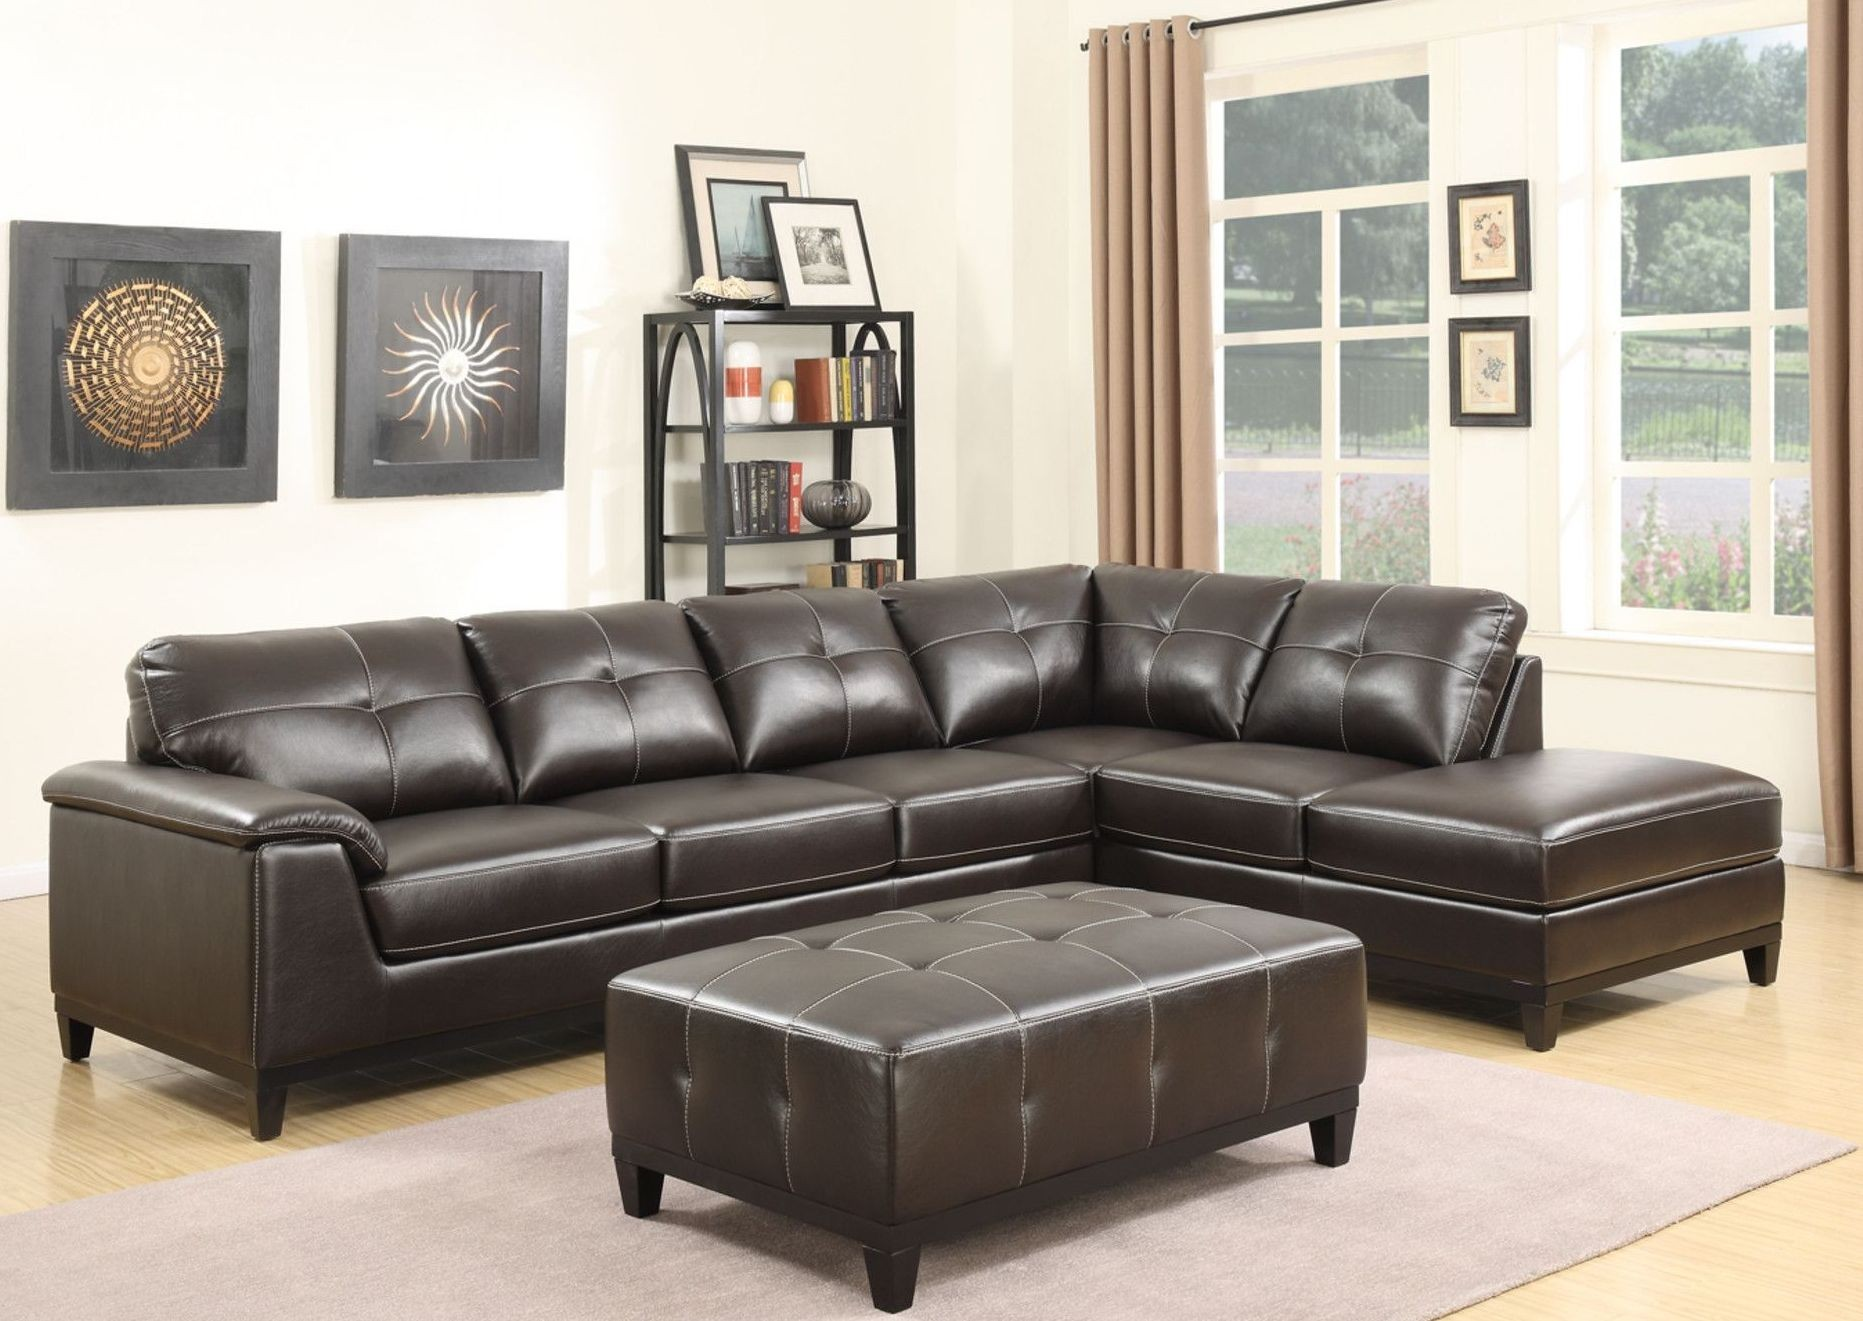 Marquis Walnut Brown 3 Piece Sectional From Emerald Home